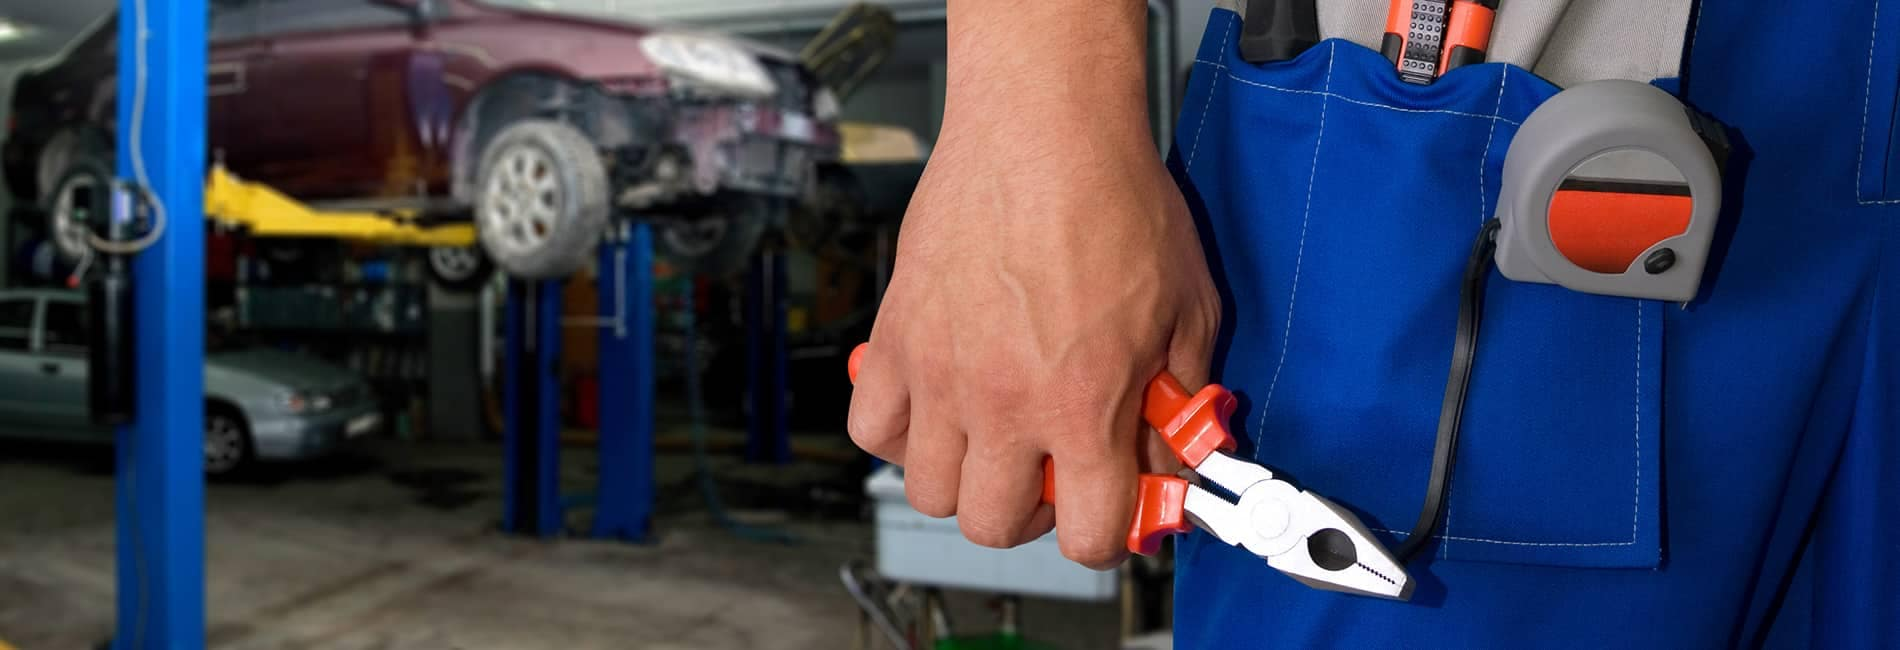 Tool picture of technician's hand holding pliers